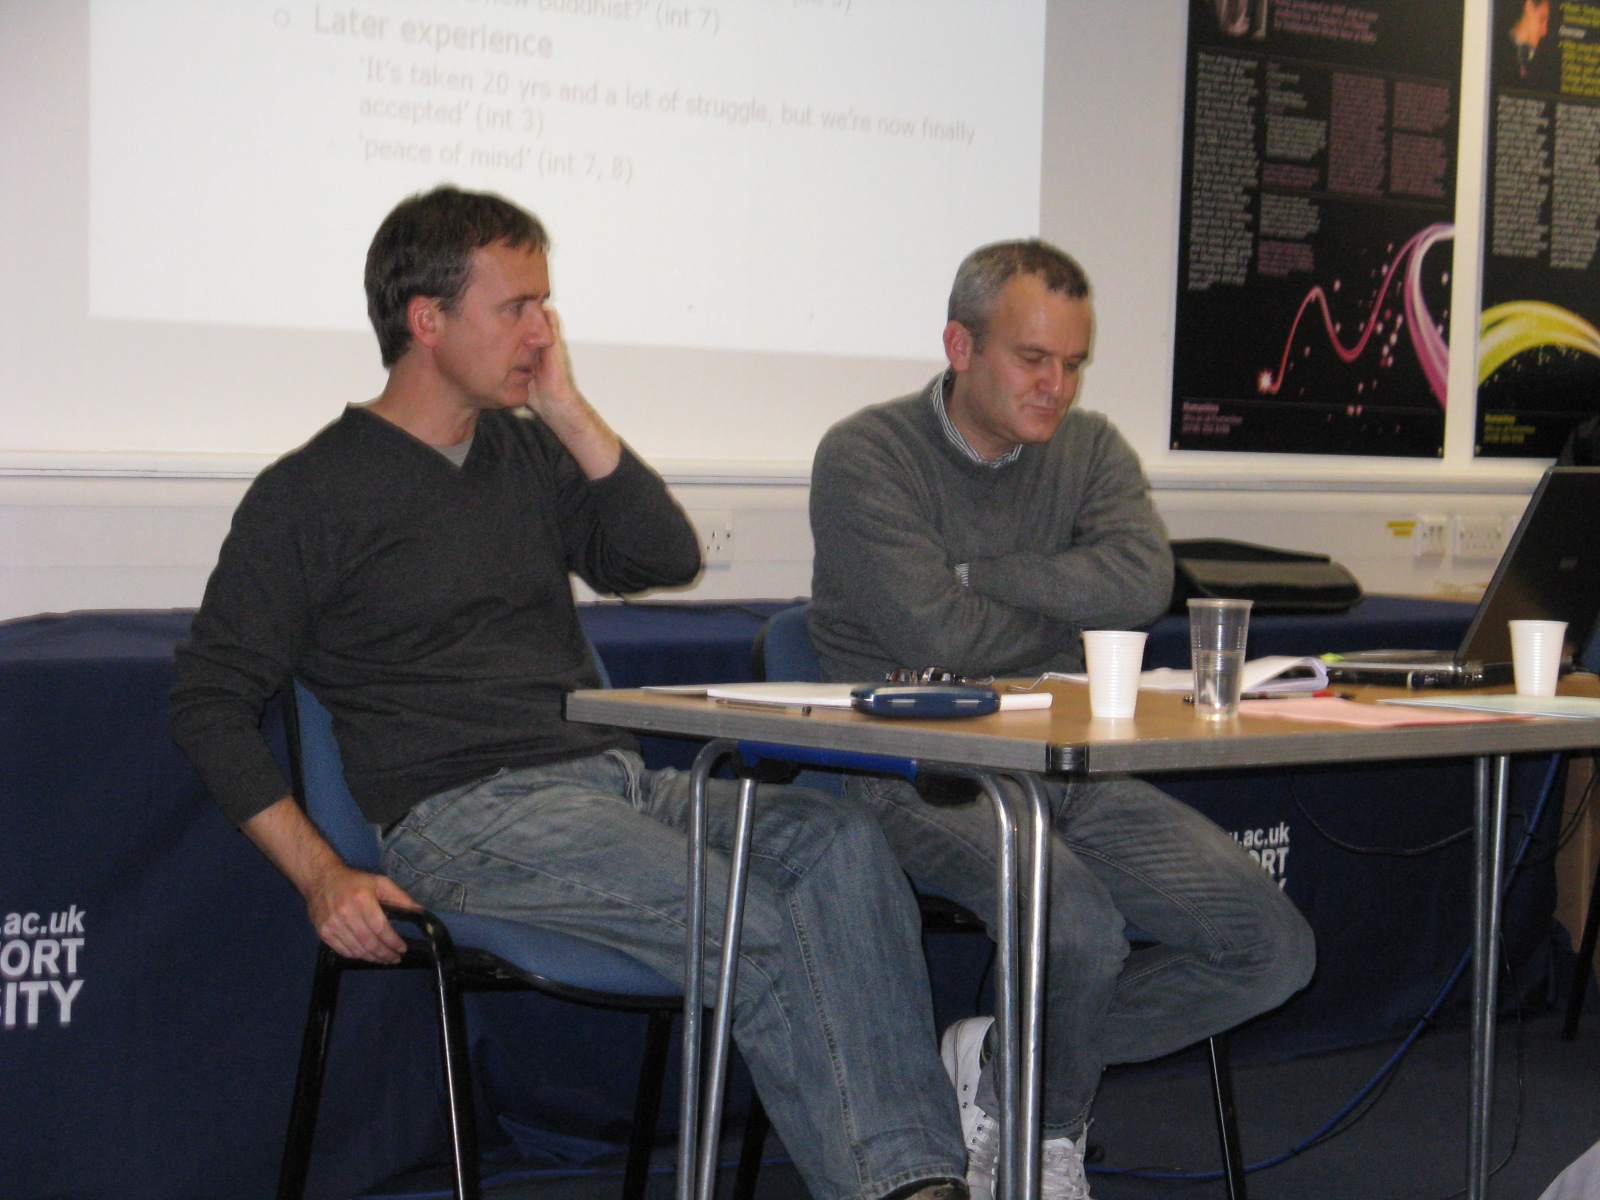 Dave Morland and Steve Taylor